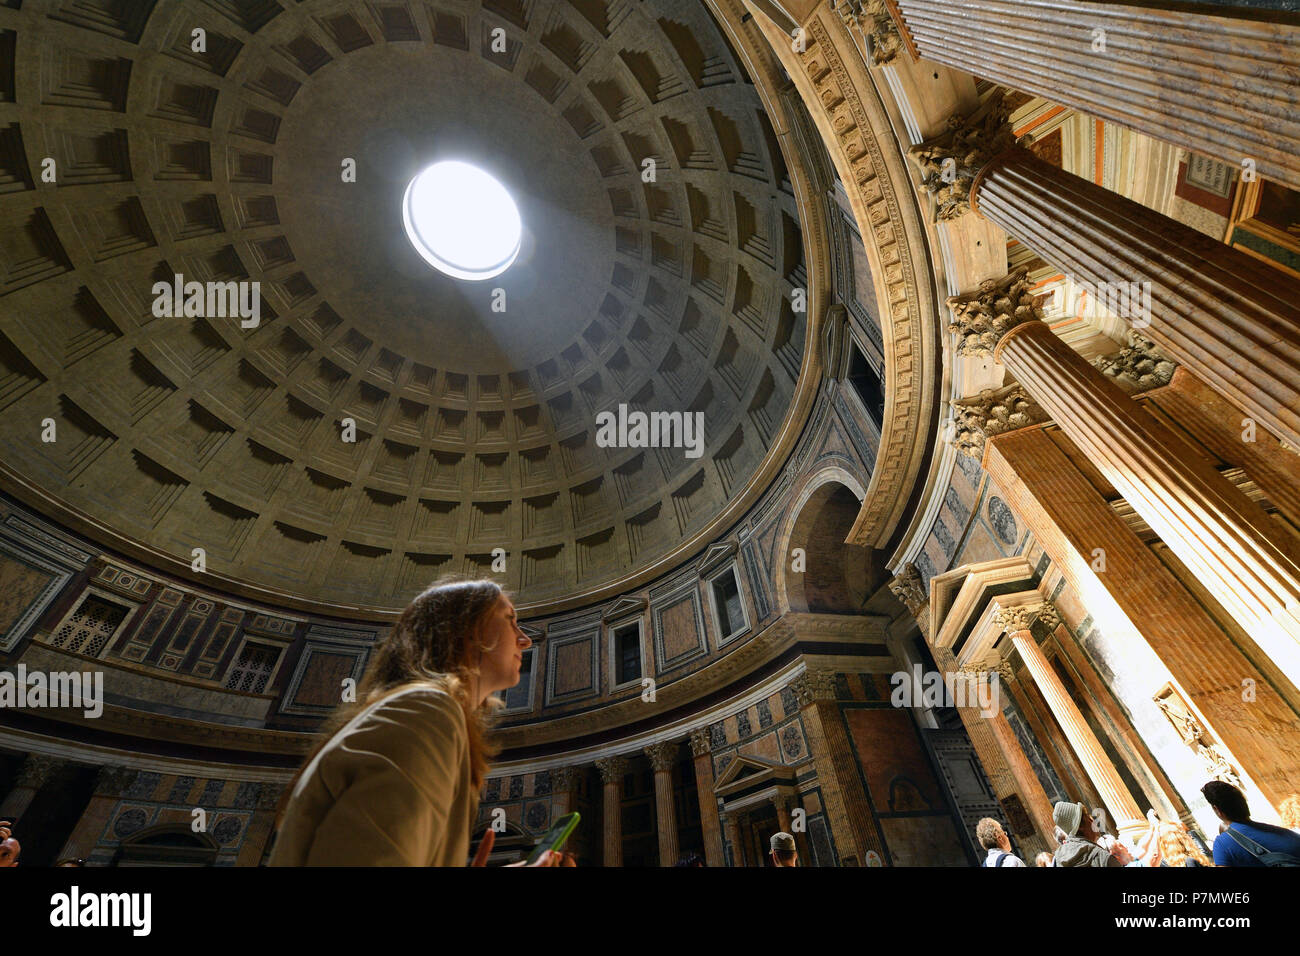 Italy, Lazio, Rome, historical centre listed as World Heritage by UNESCO, Piazza della Rotonda, the Pantheon, the dome inside the Pantheon - Stock Image